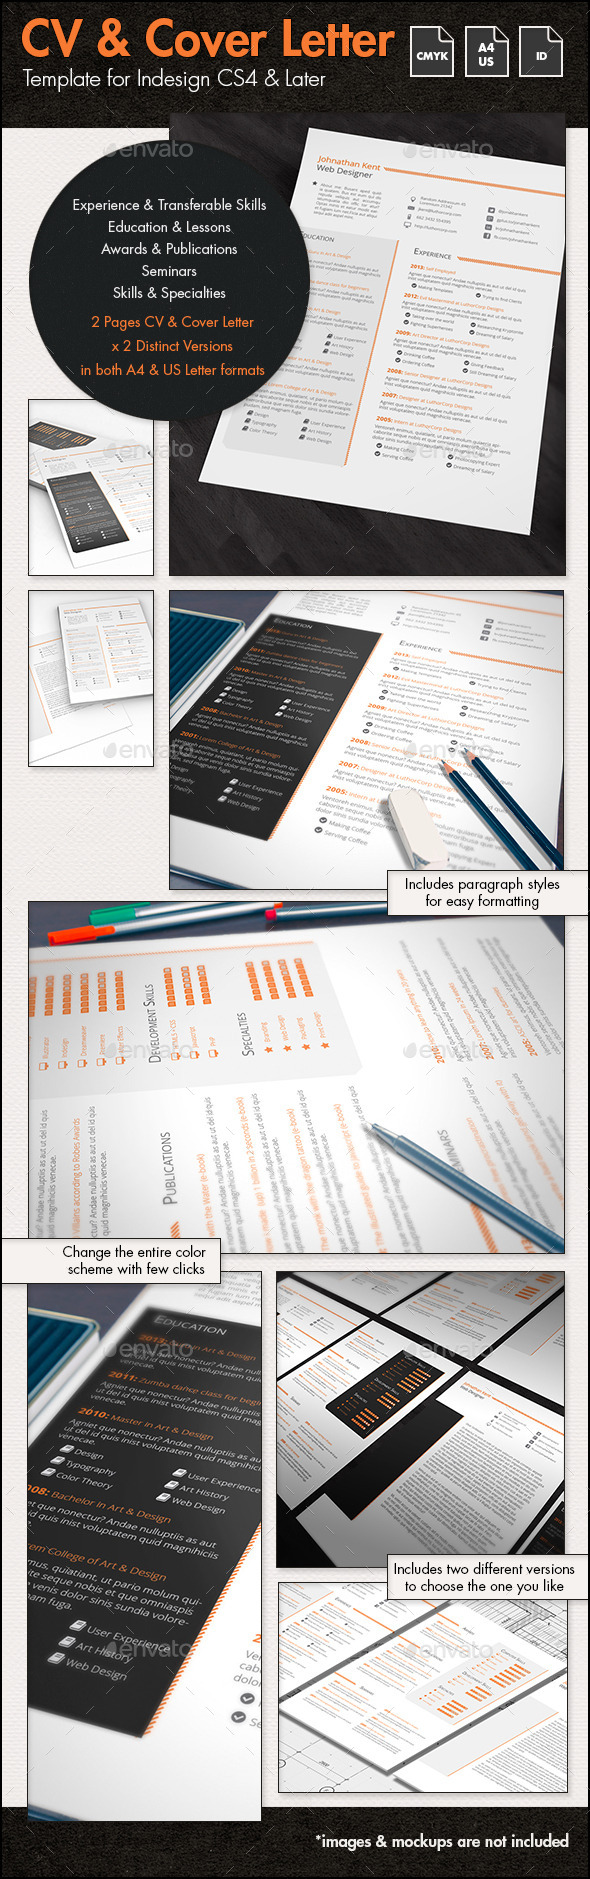 CV/Resume & Cover Letter (A4 & US Letter) by sthalassinos | GraphicRiver